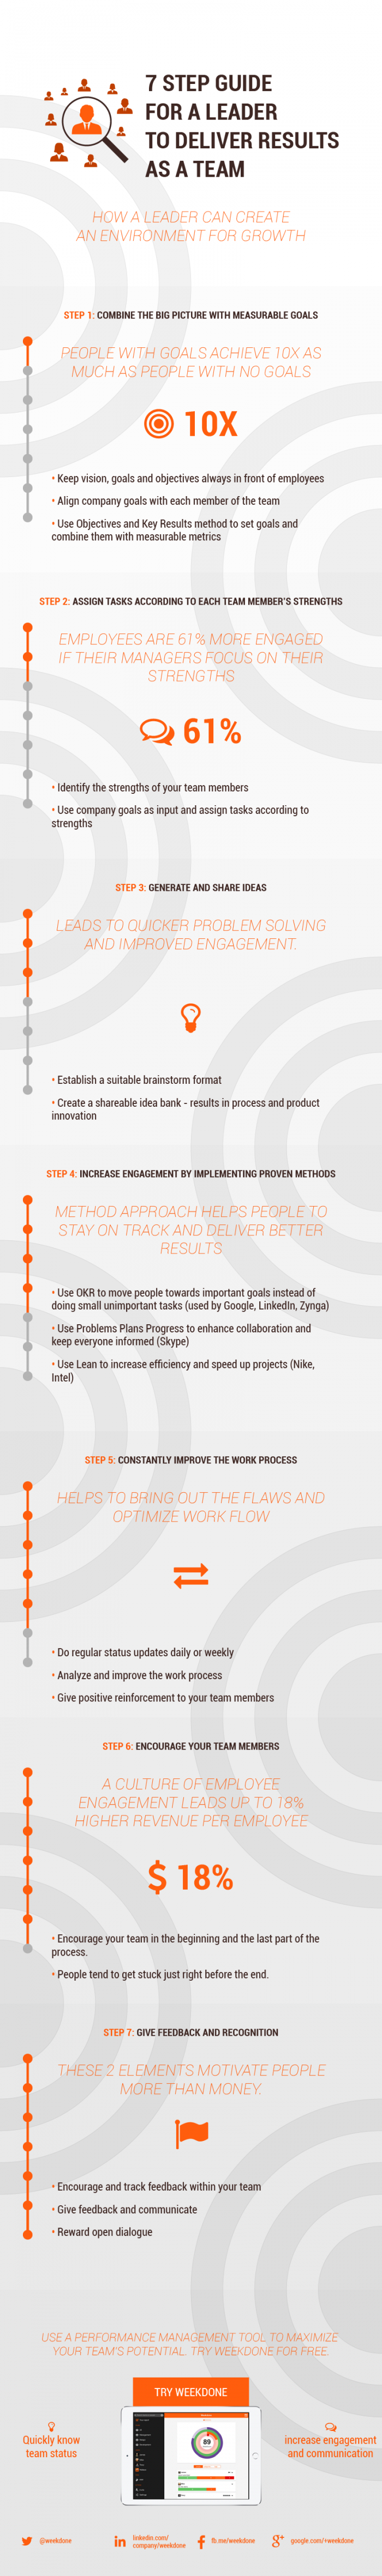 deliverresults-infographic-01